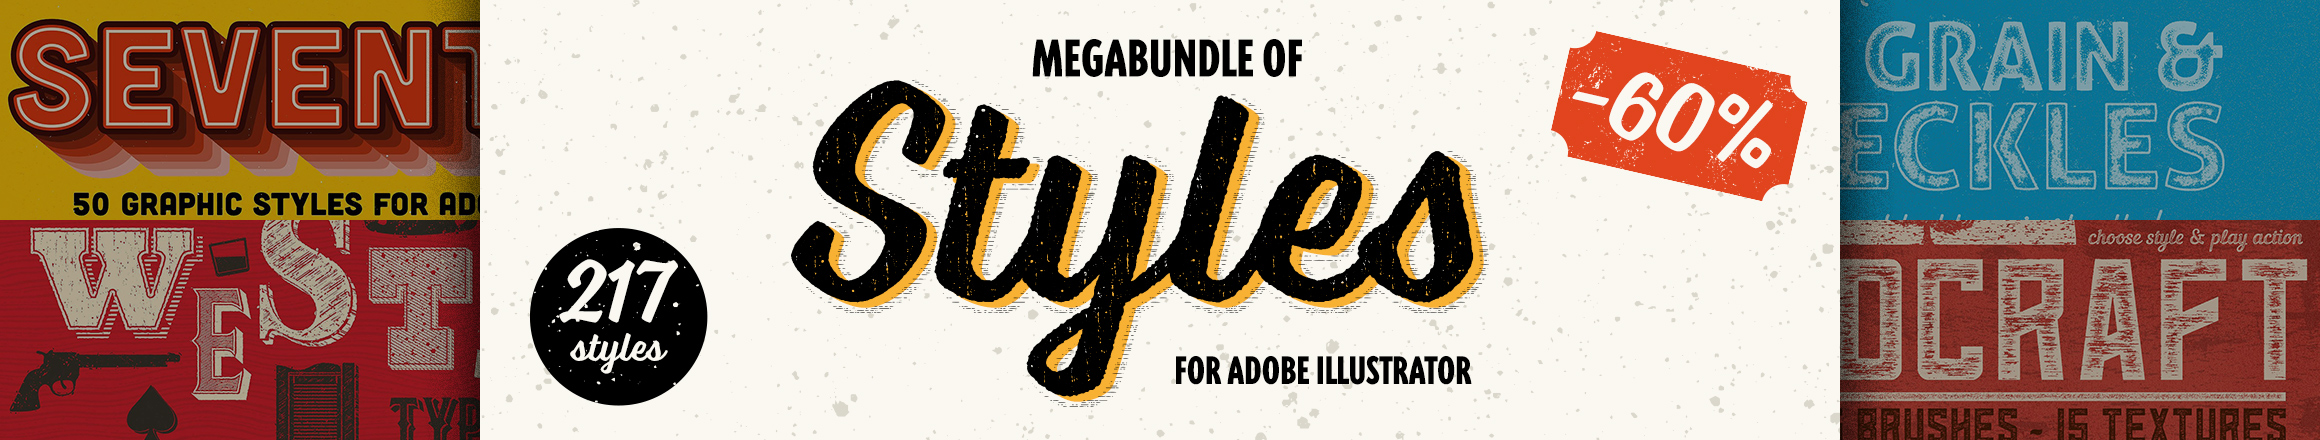 Megabundle of the Adobe Illustrator Styles